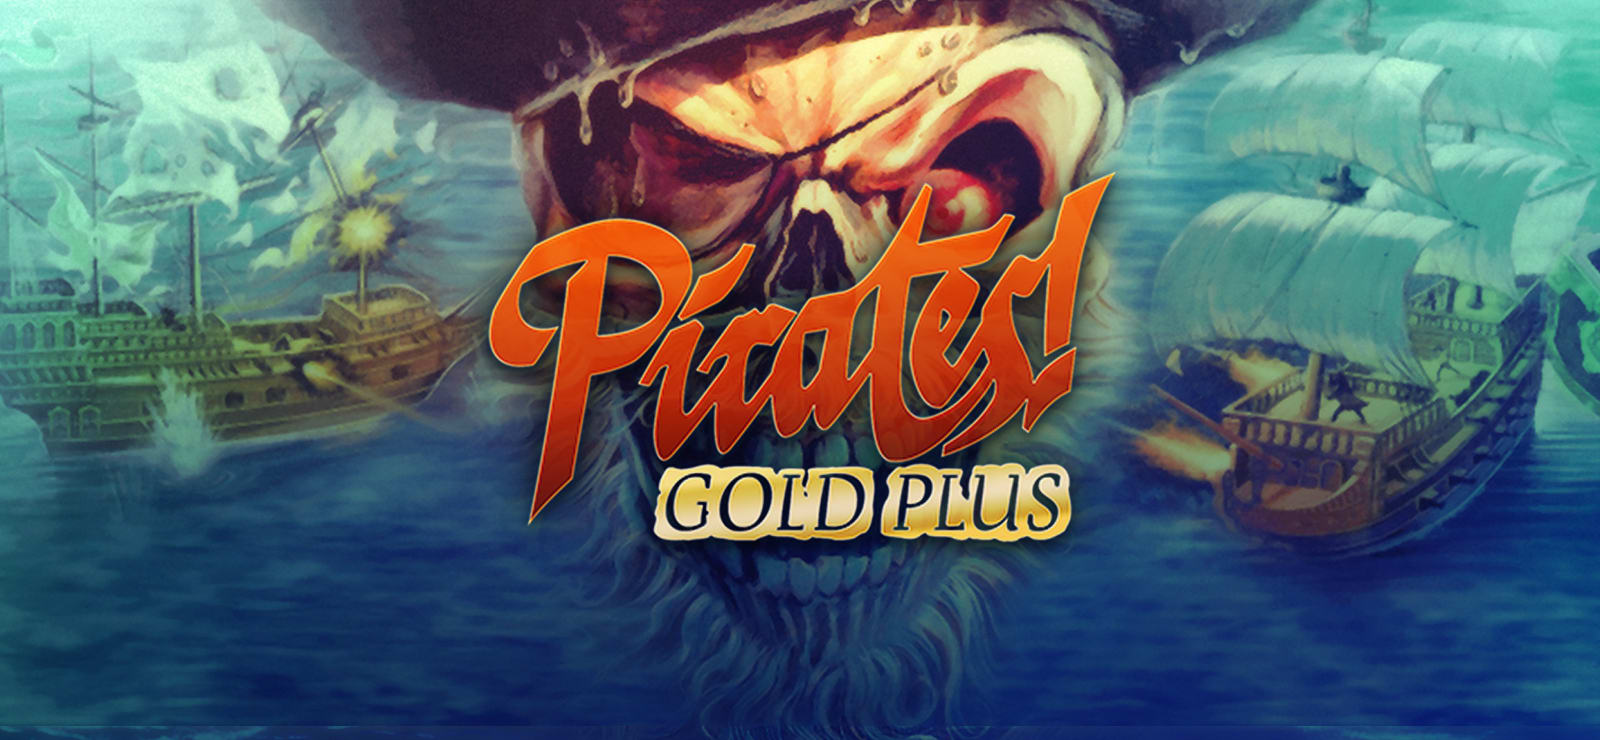 Pirates! Gold Plus varies-with-device